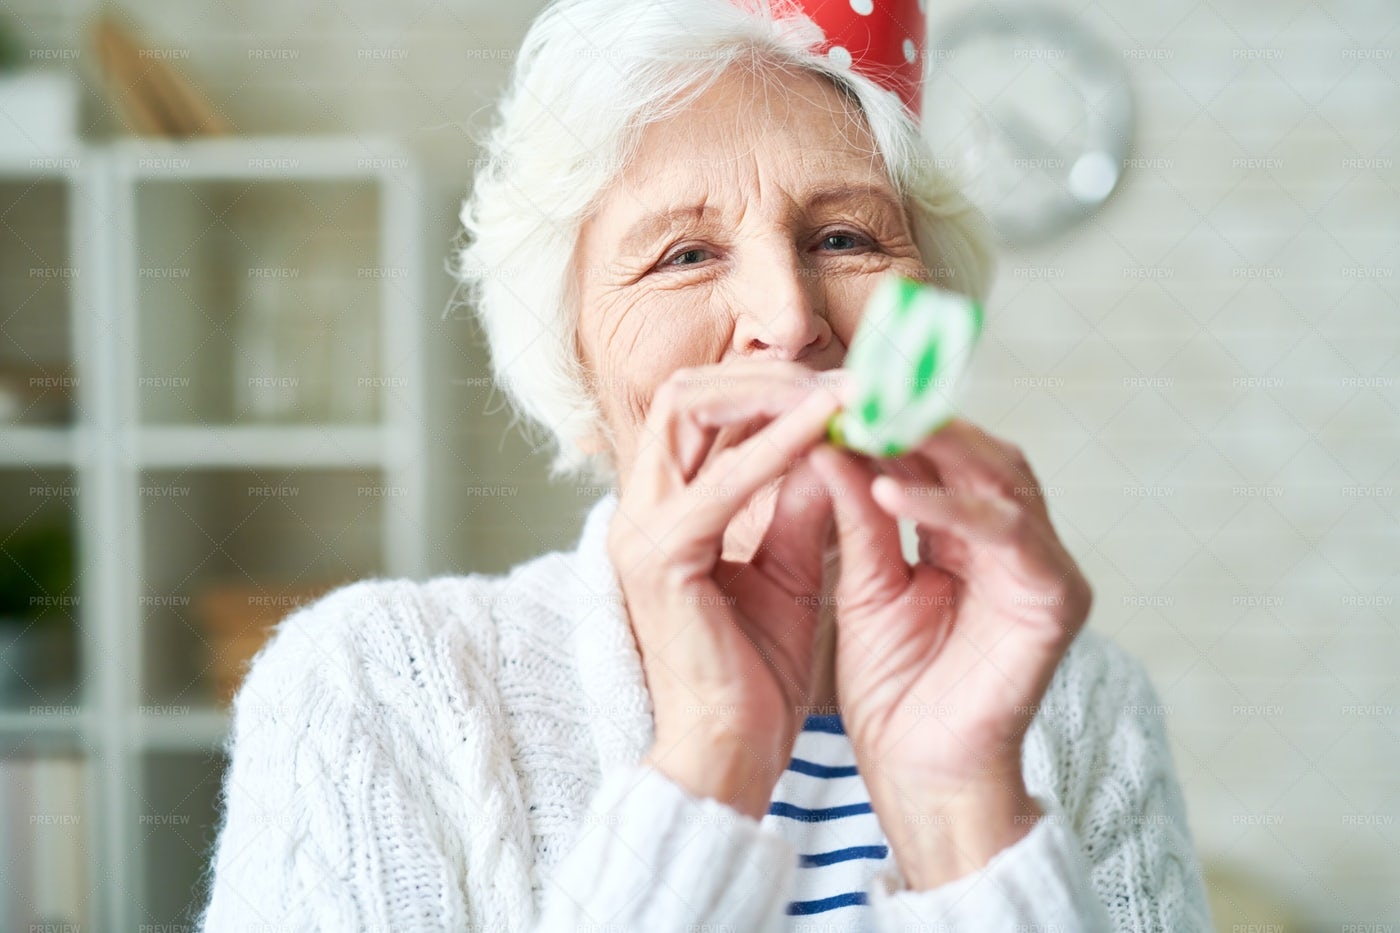 Carefree Granny Blowing Party Horn: Stock Photos